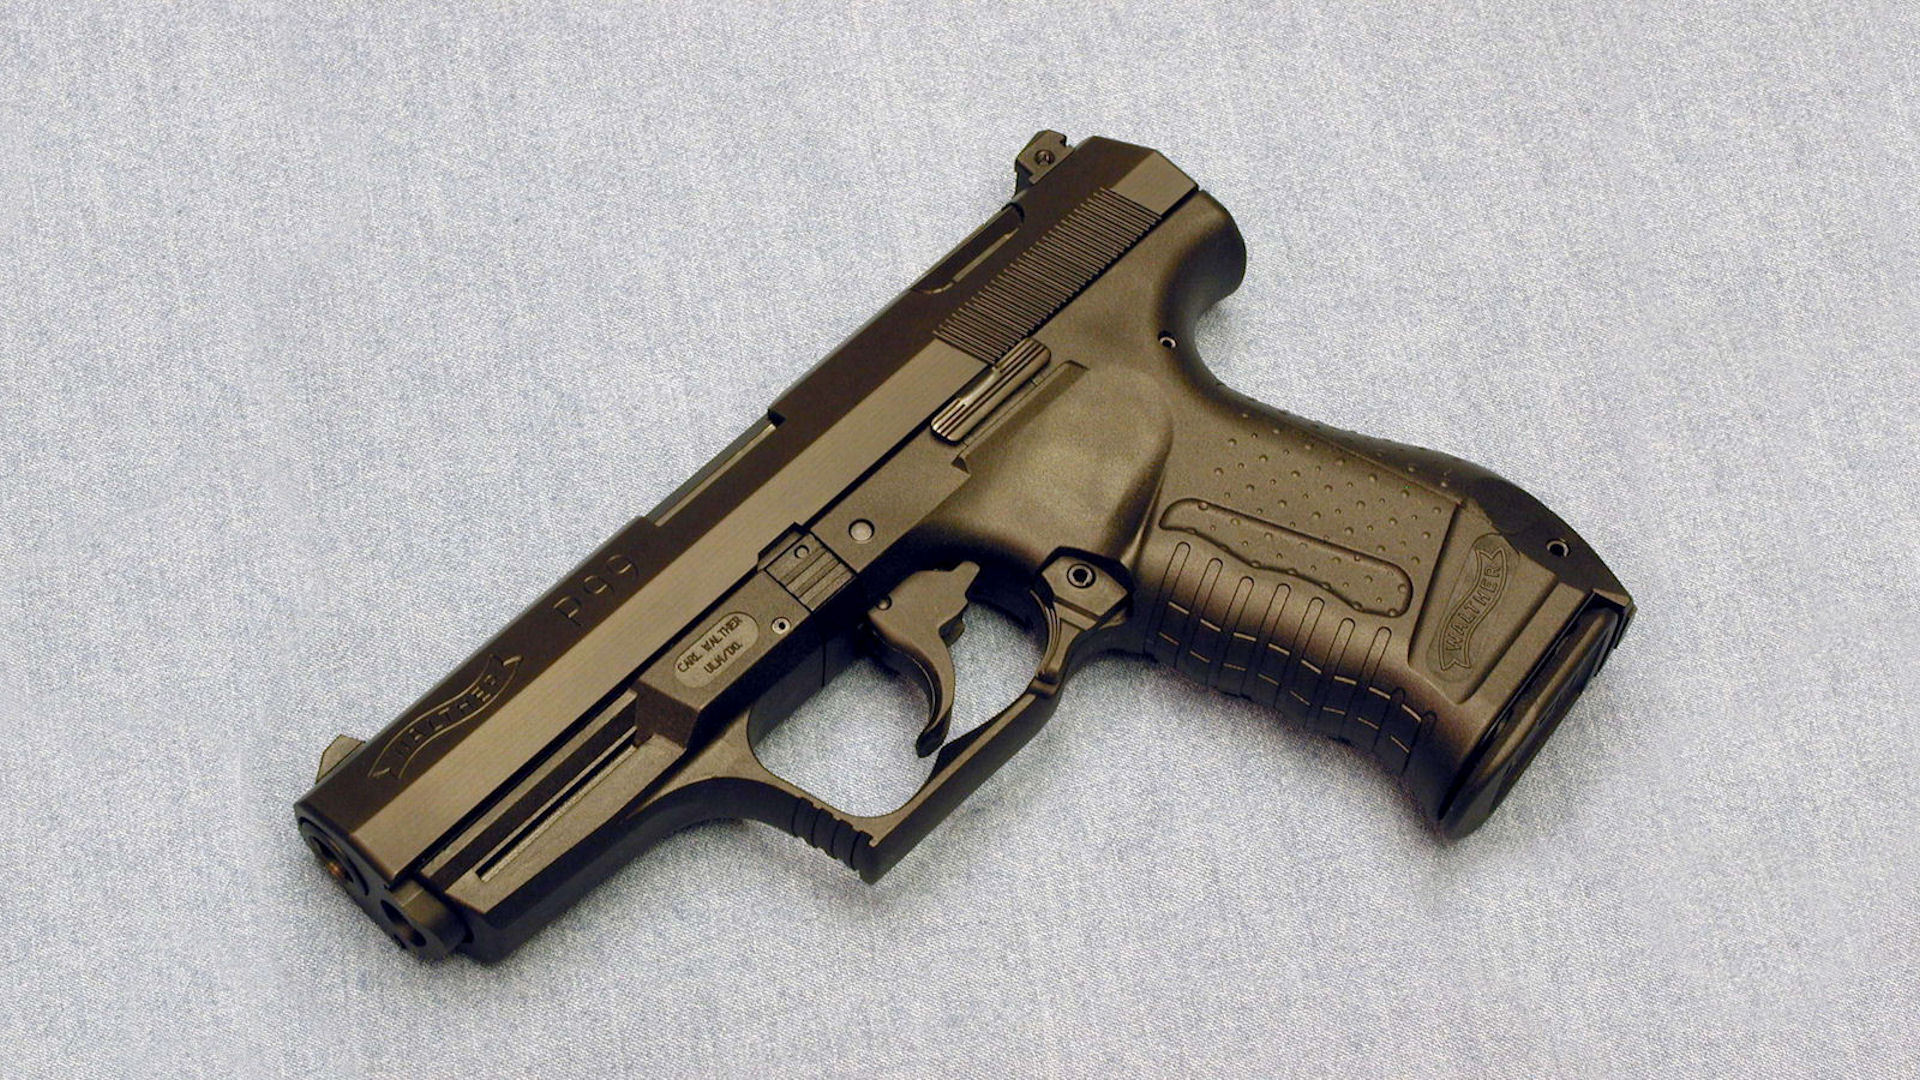 Walther P99 HD Wallpaper Background Image 1920x1080 ID 1920x1080